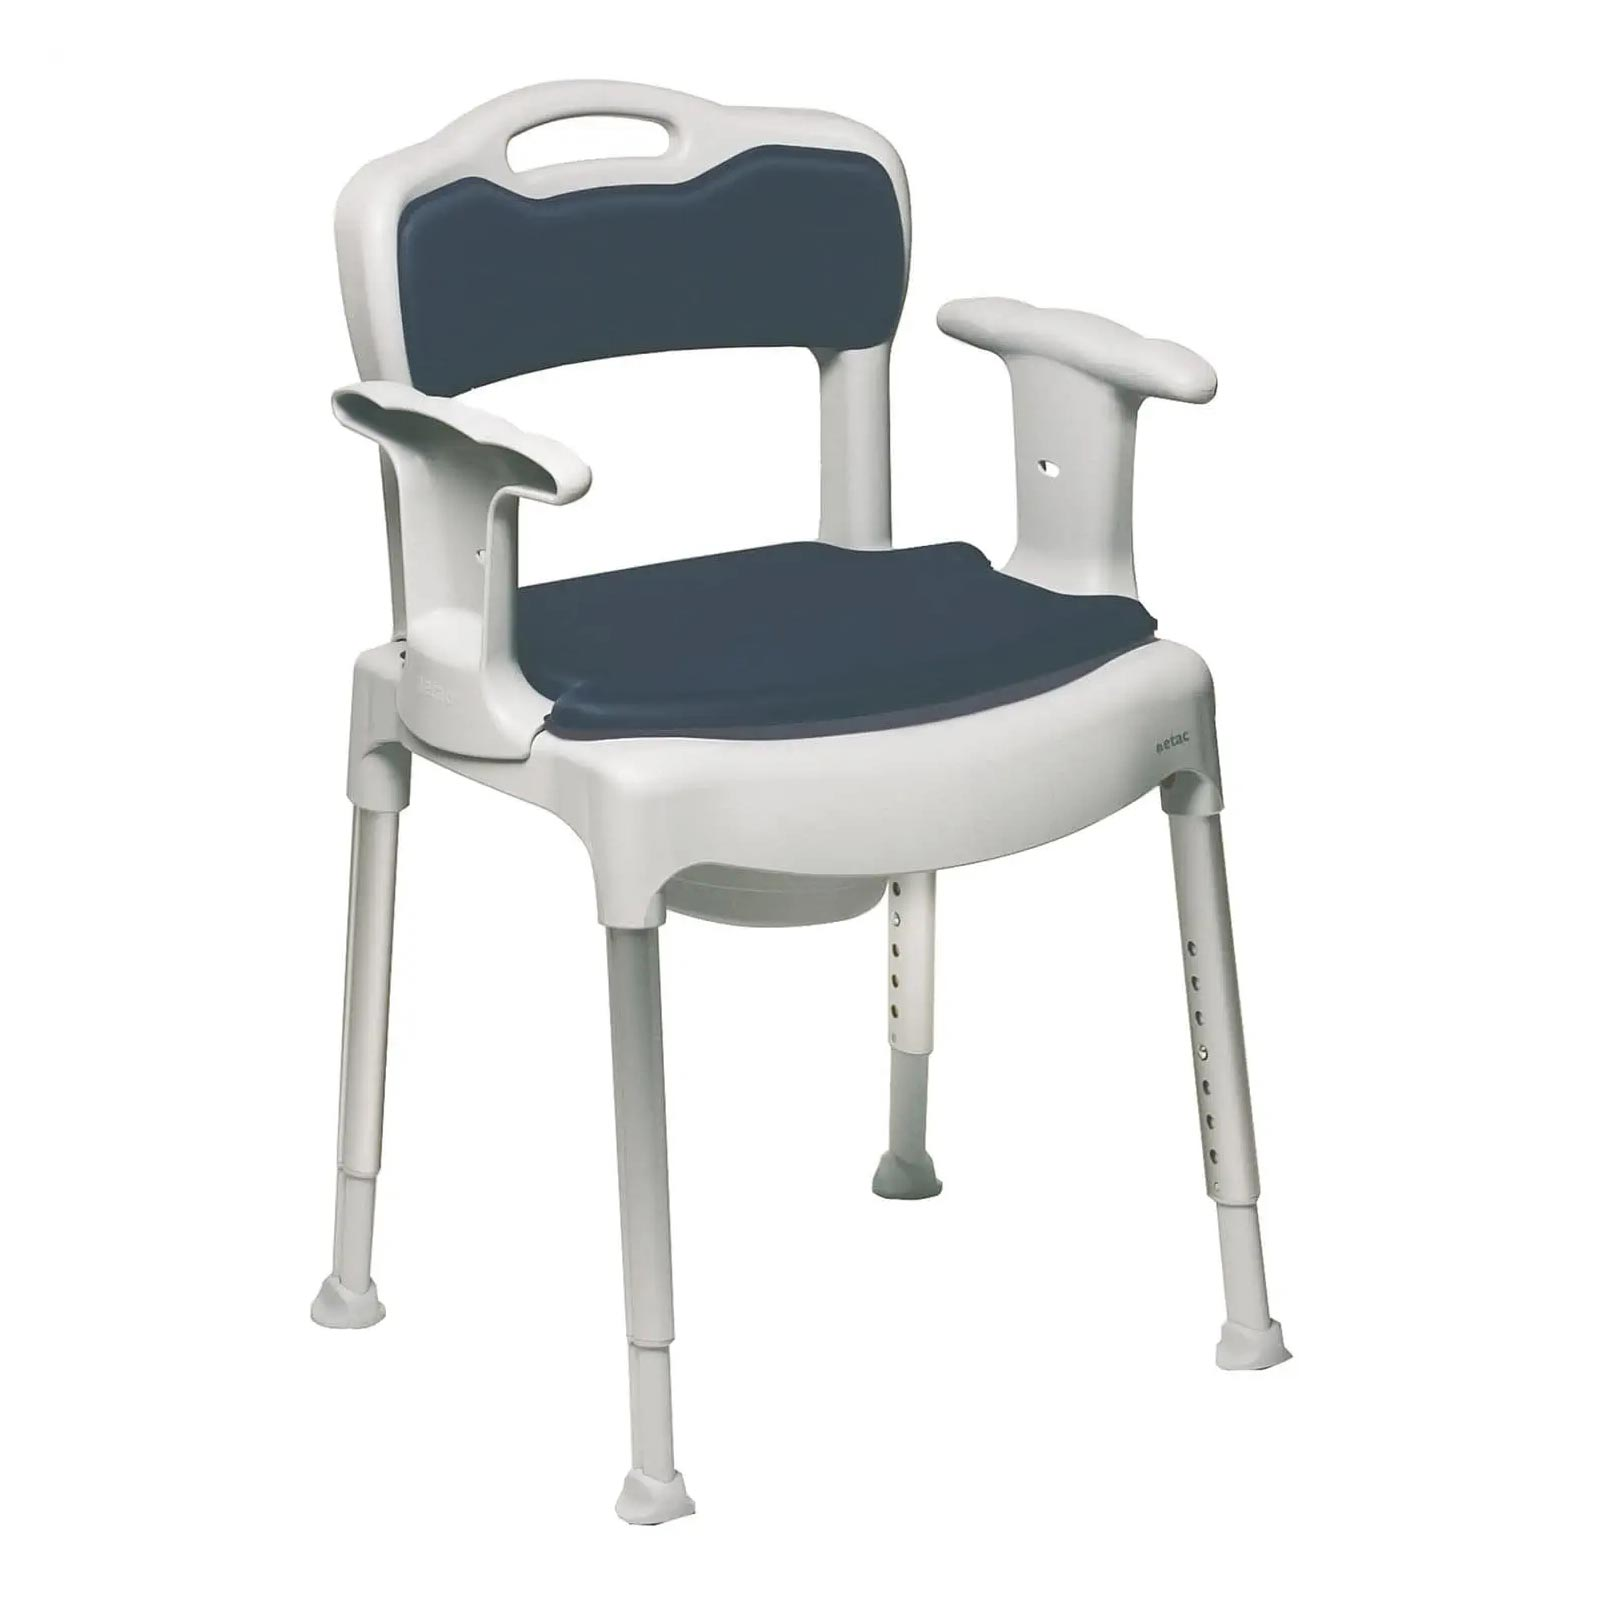 Etac swift commode chair etac commode chair - Relooker chaise paille ...